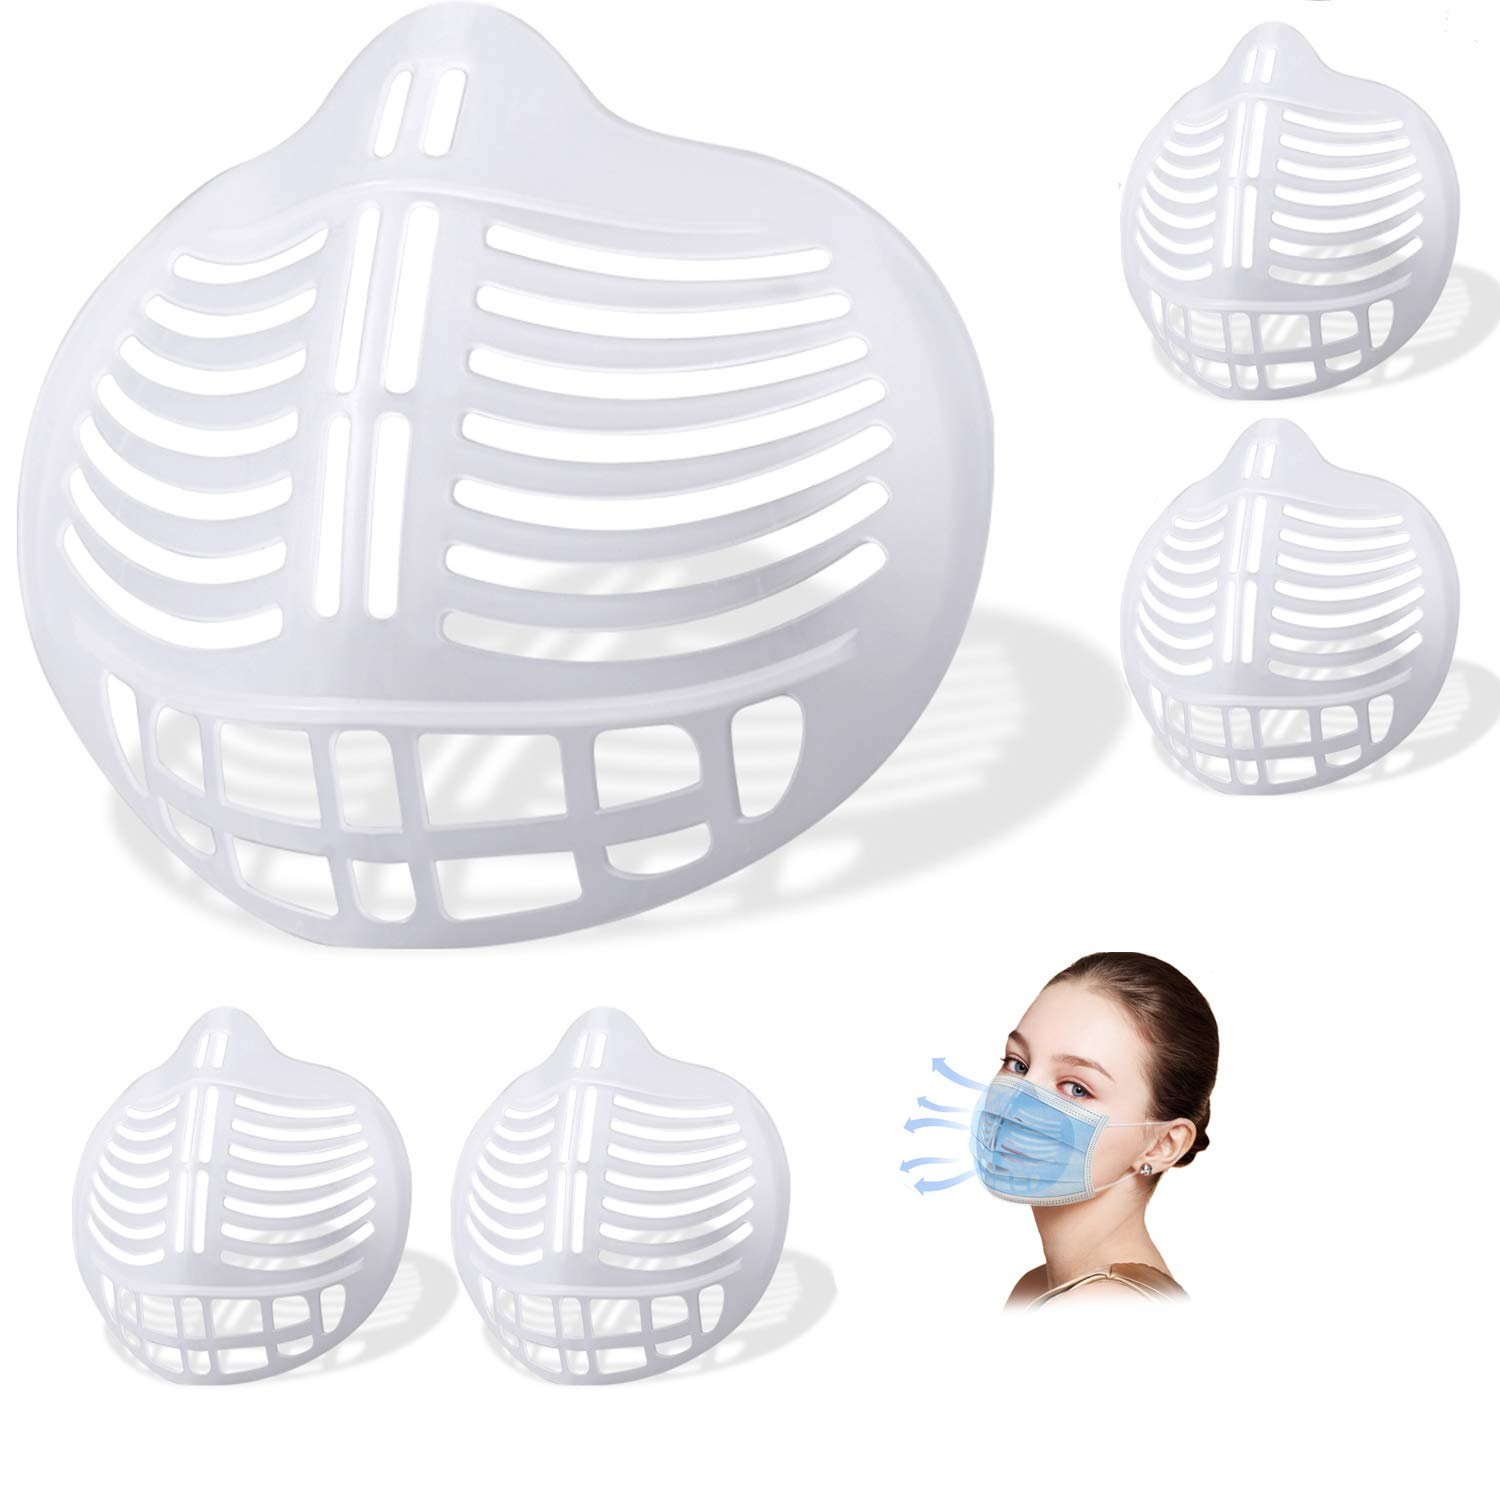 [5 PCS]3D Face Bracket, Face Breathe Cup, Reusable Cool Stand Insert Turtle to Keep Fabric Off, Clear : Beauty